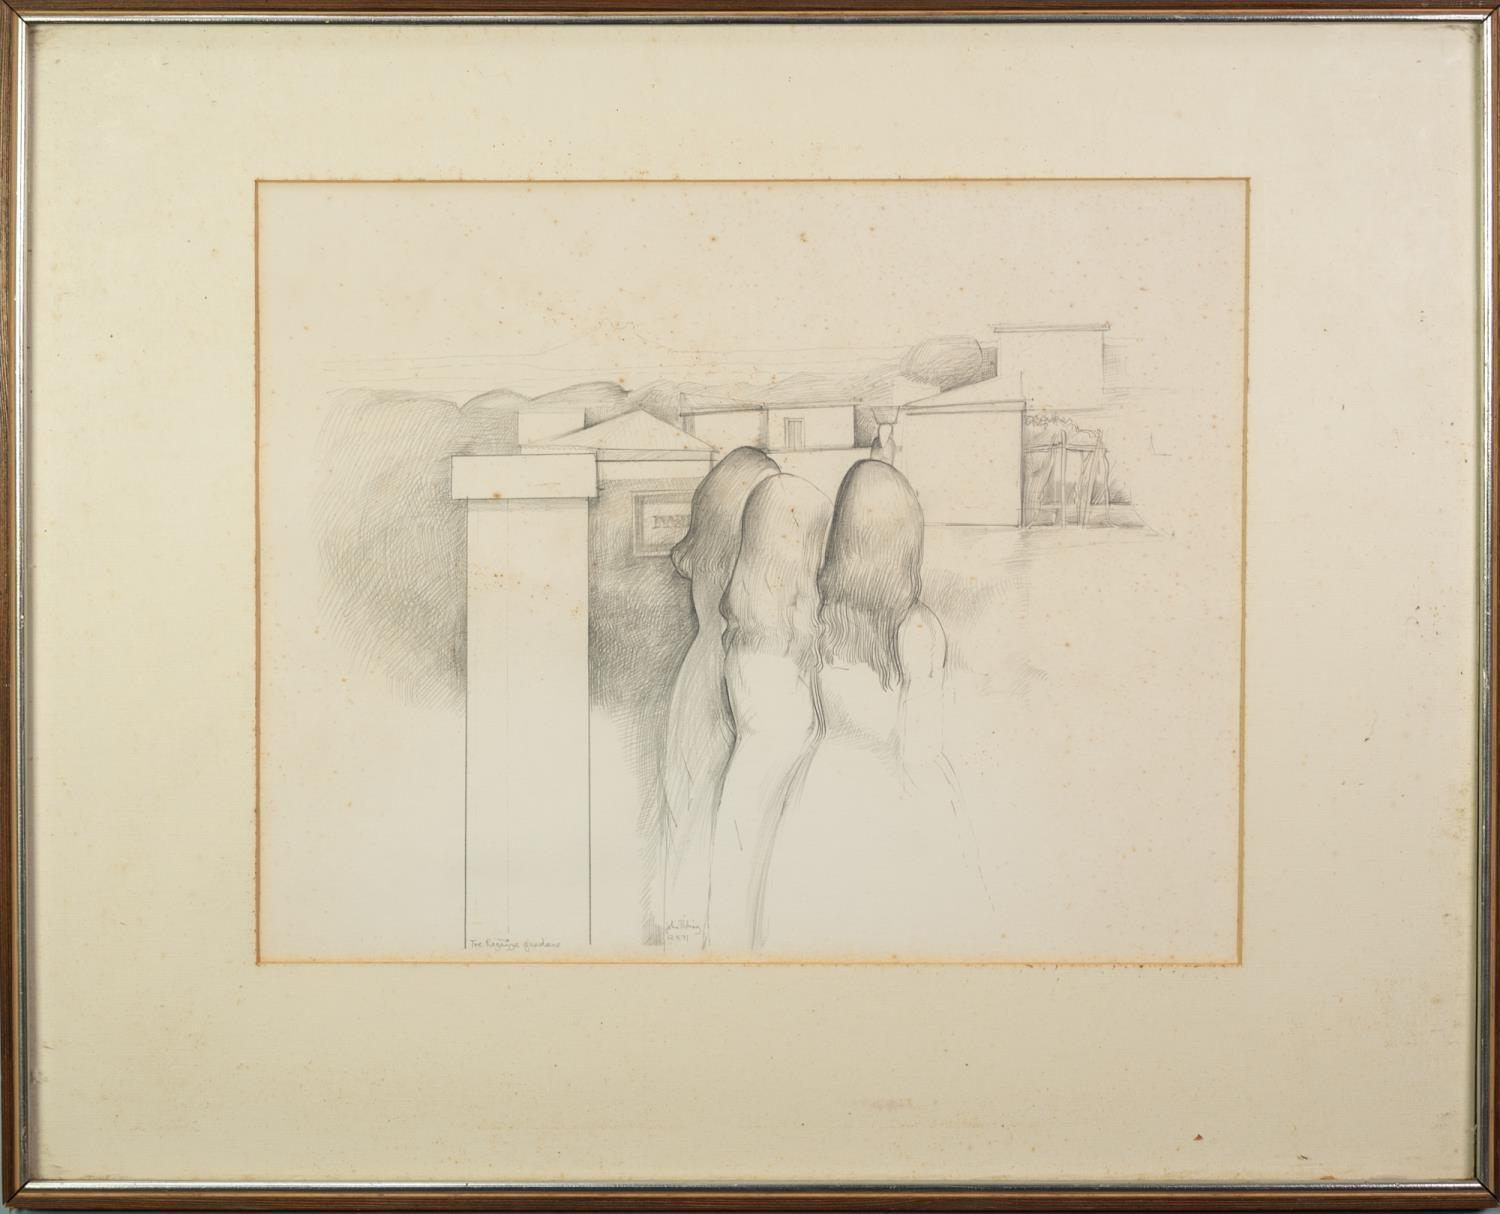 JOHN PICKING (b.1939) PENCIL DRAWING ?The Ragazzi Guardians? Signed, tilted and dated 12 X 71 13? - Image 2 of 2